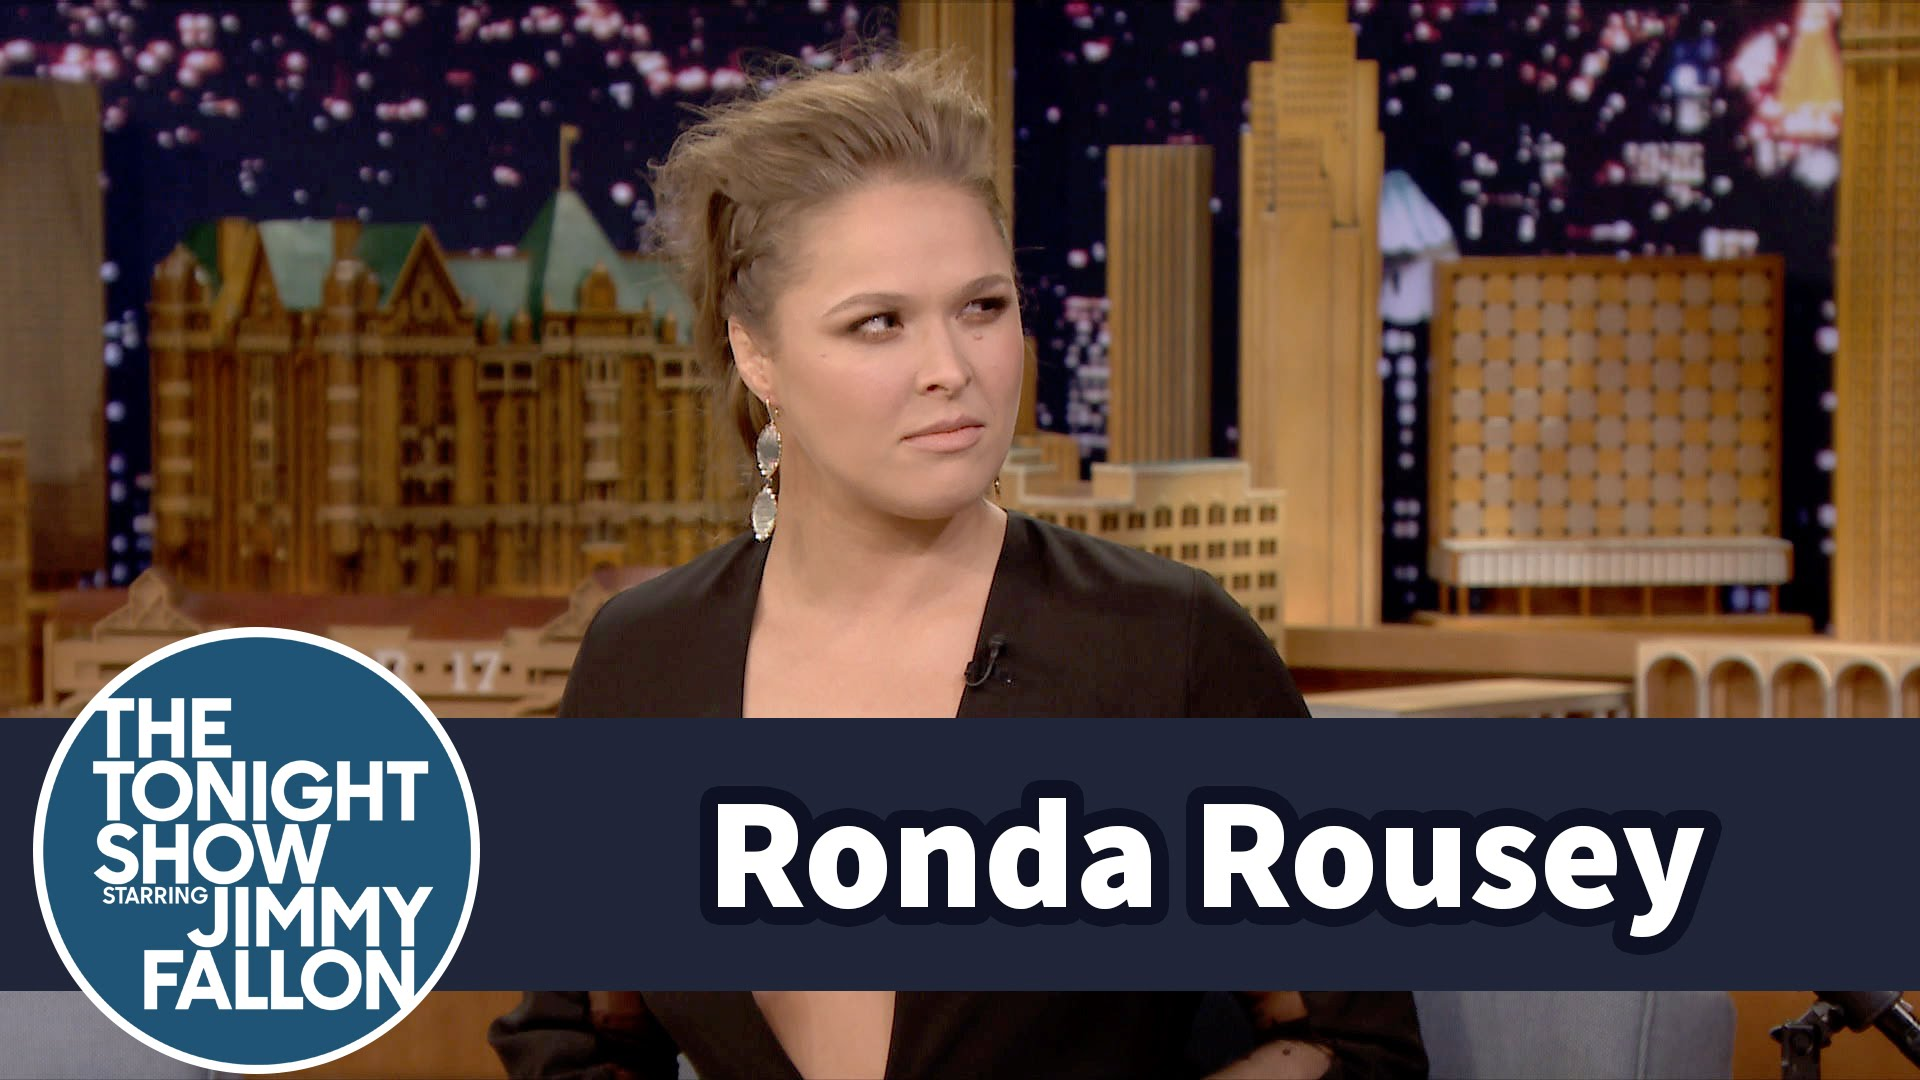 Ronda Rousey predicted her defeat to Holly Holm